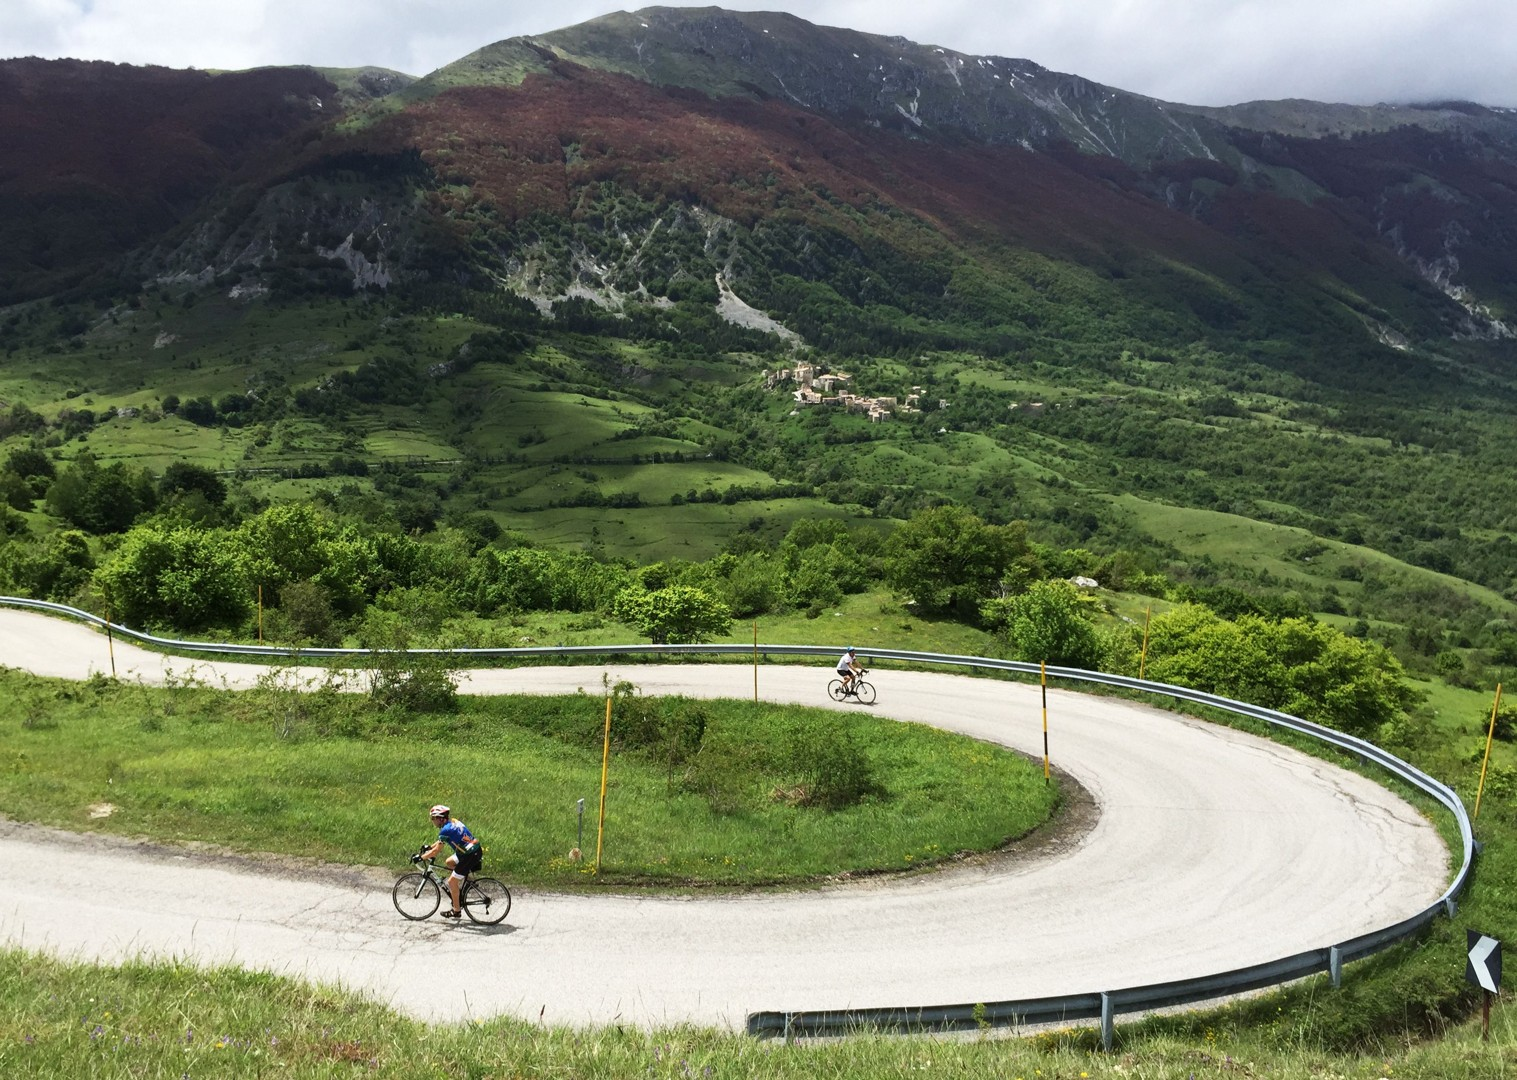 guided-road-cycling-holiday-italy-abruzzo-appennini-dabruzzo.JPG - Italy - Abruzzo - Appennini d'Abruzzo - Guided Road Cycling Holiday - Road Cycling